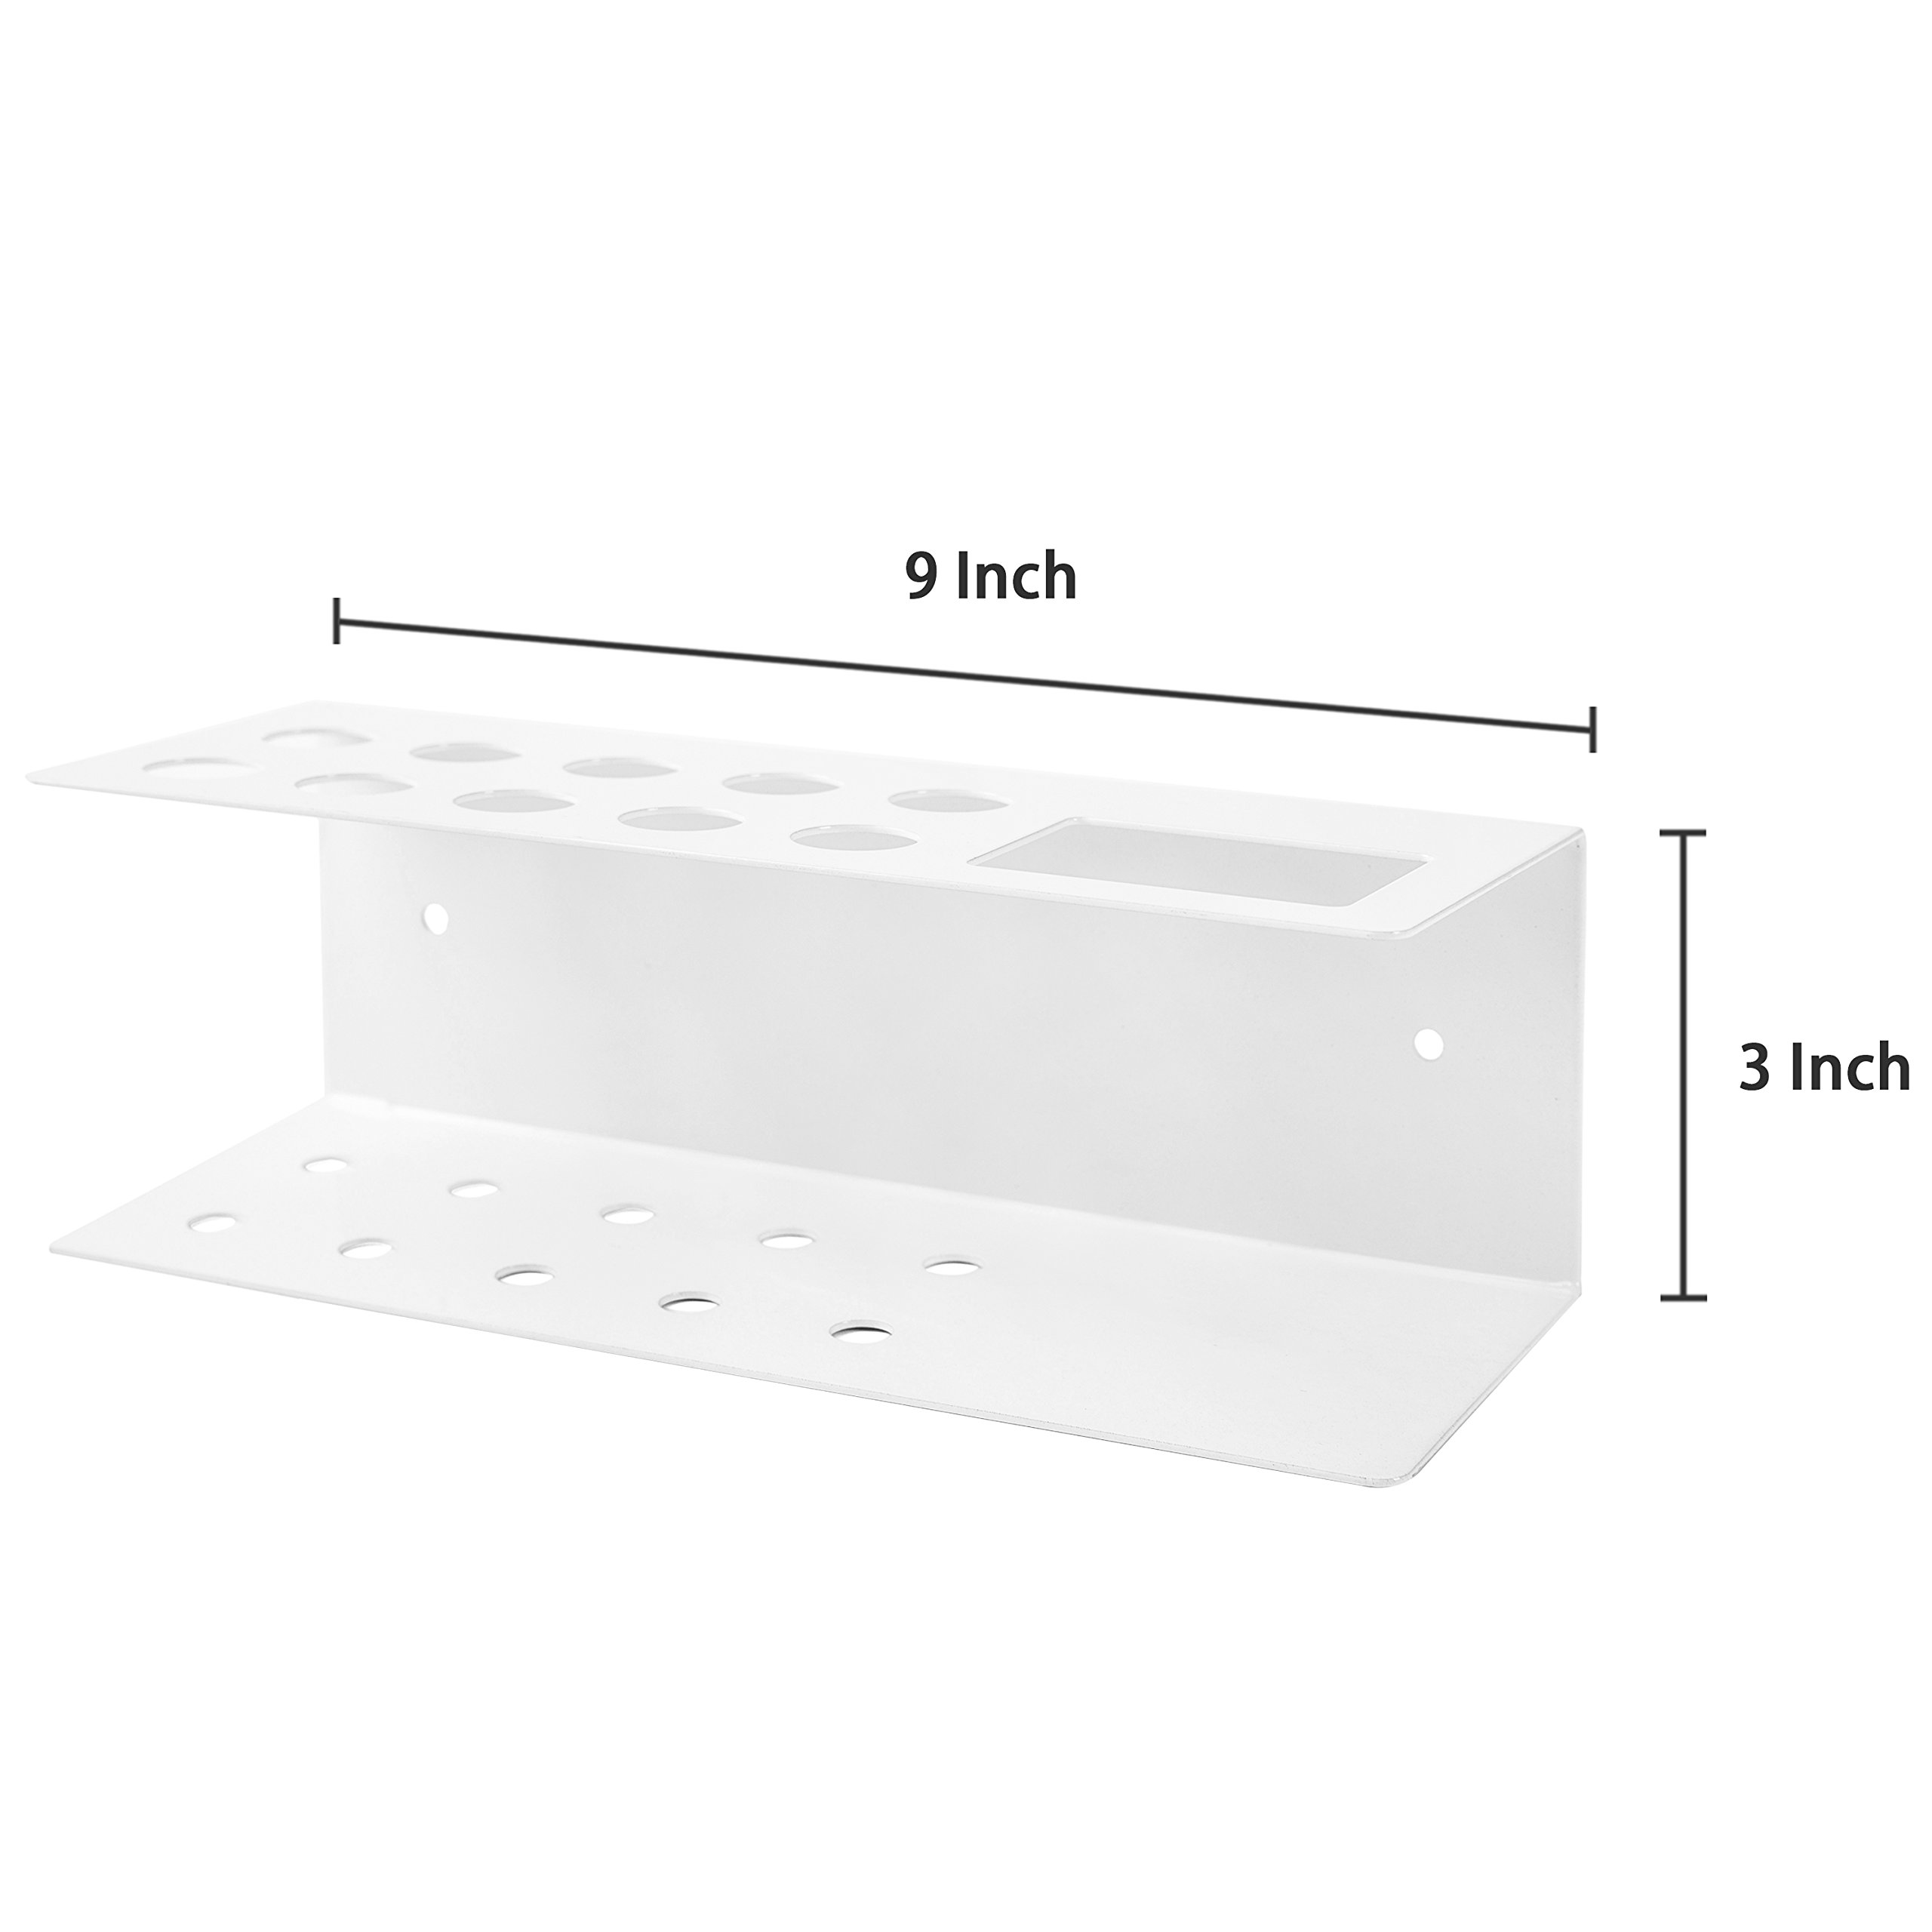 10-Slot Wall-Mounted Metal Dry Erase Marker and Eraser Holder Rack, White by MyGift (Image #6)